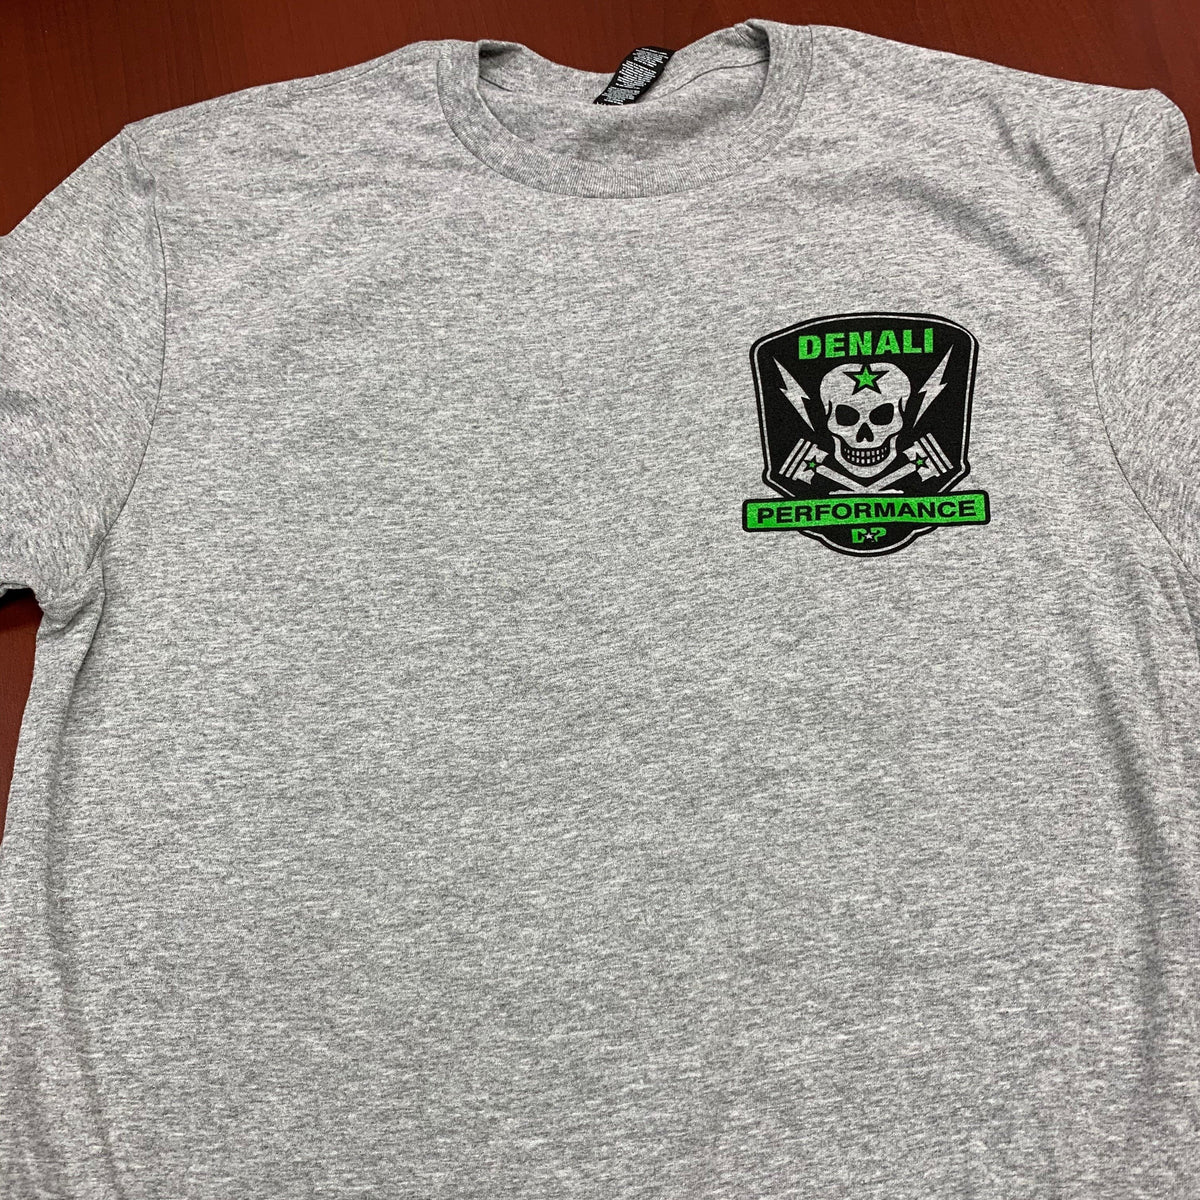 Denali Performance Shirt.